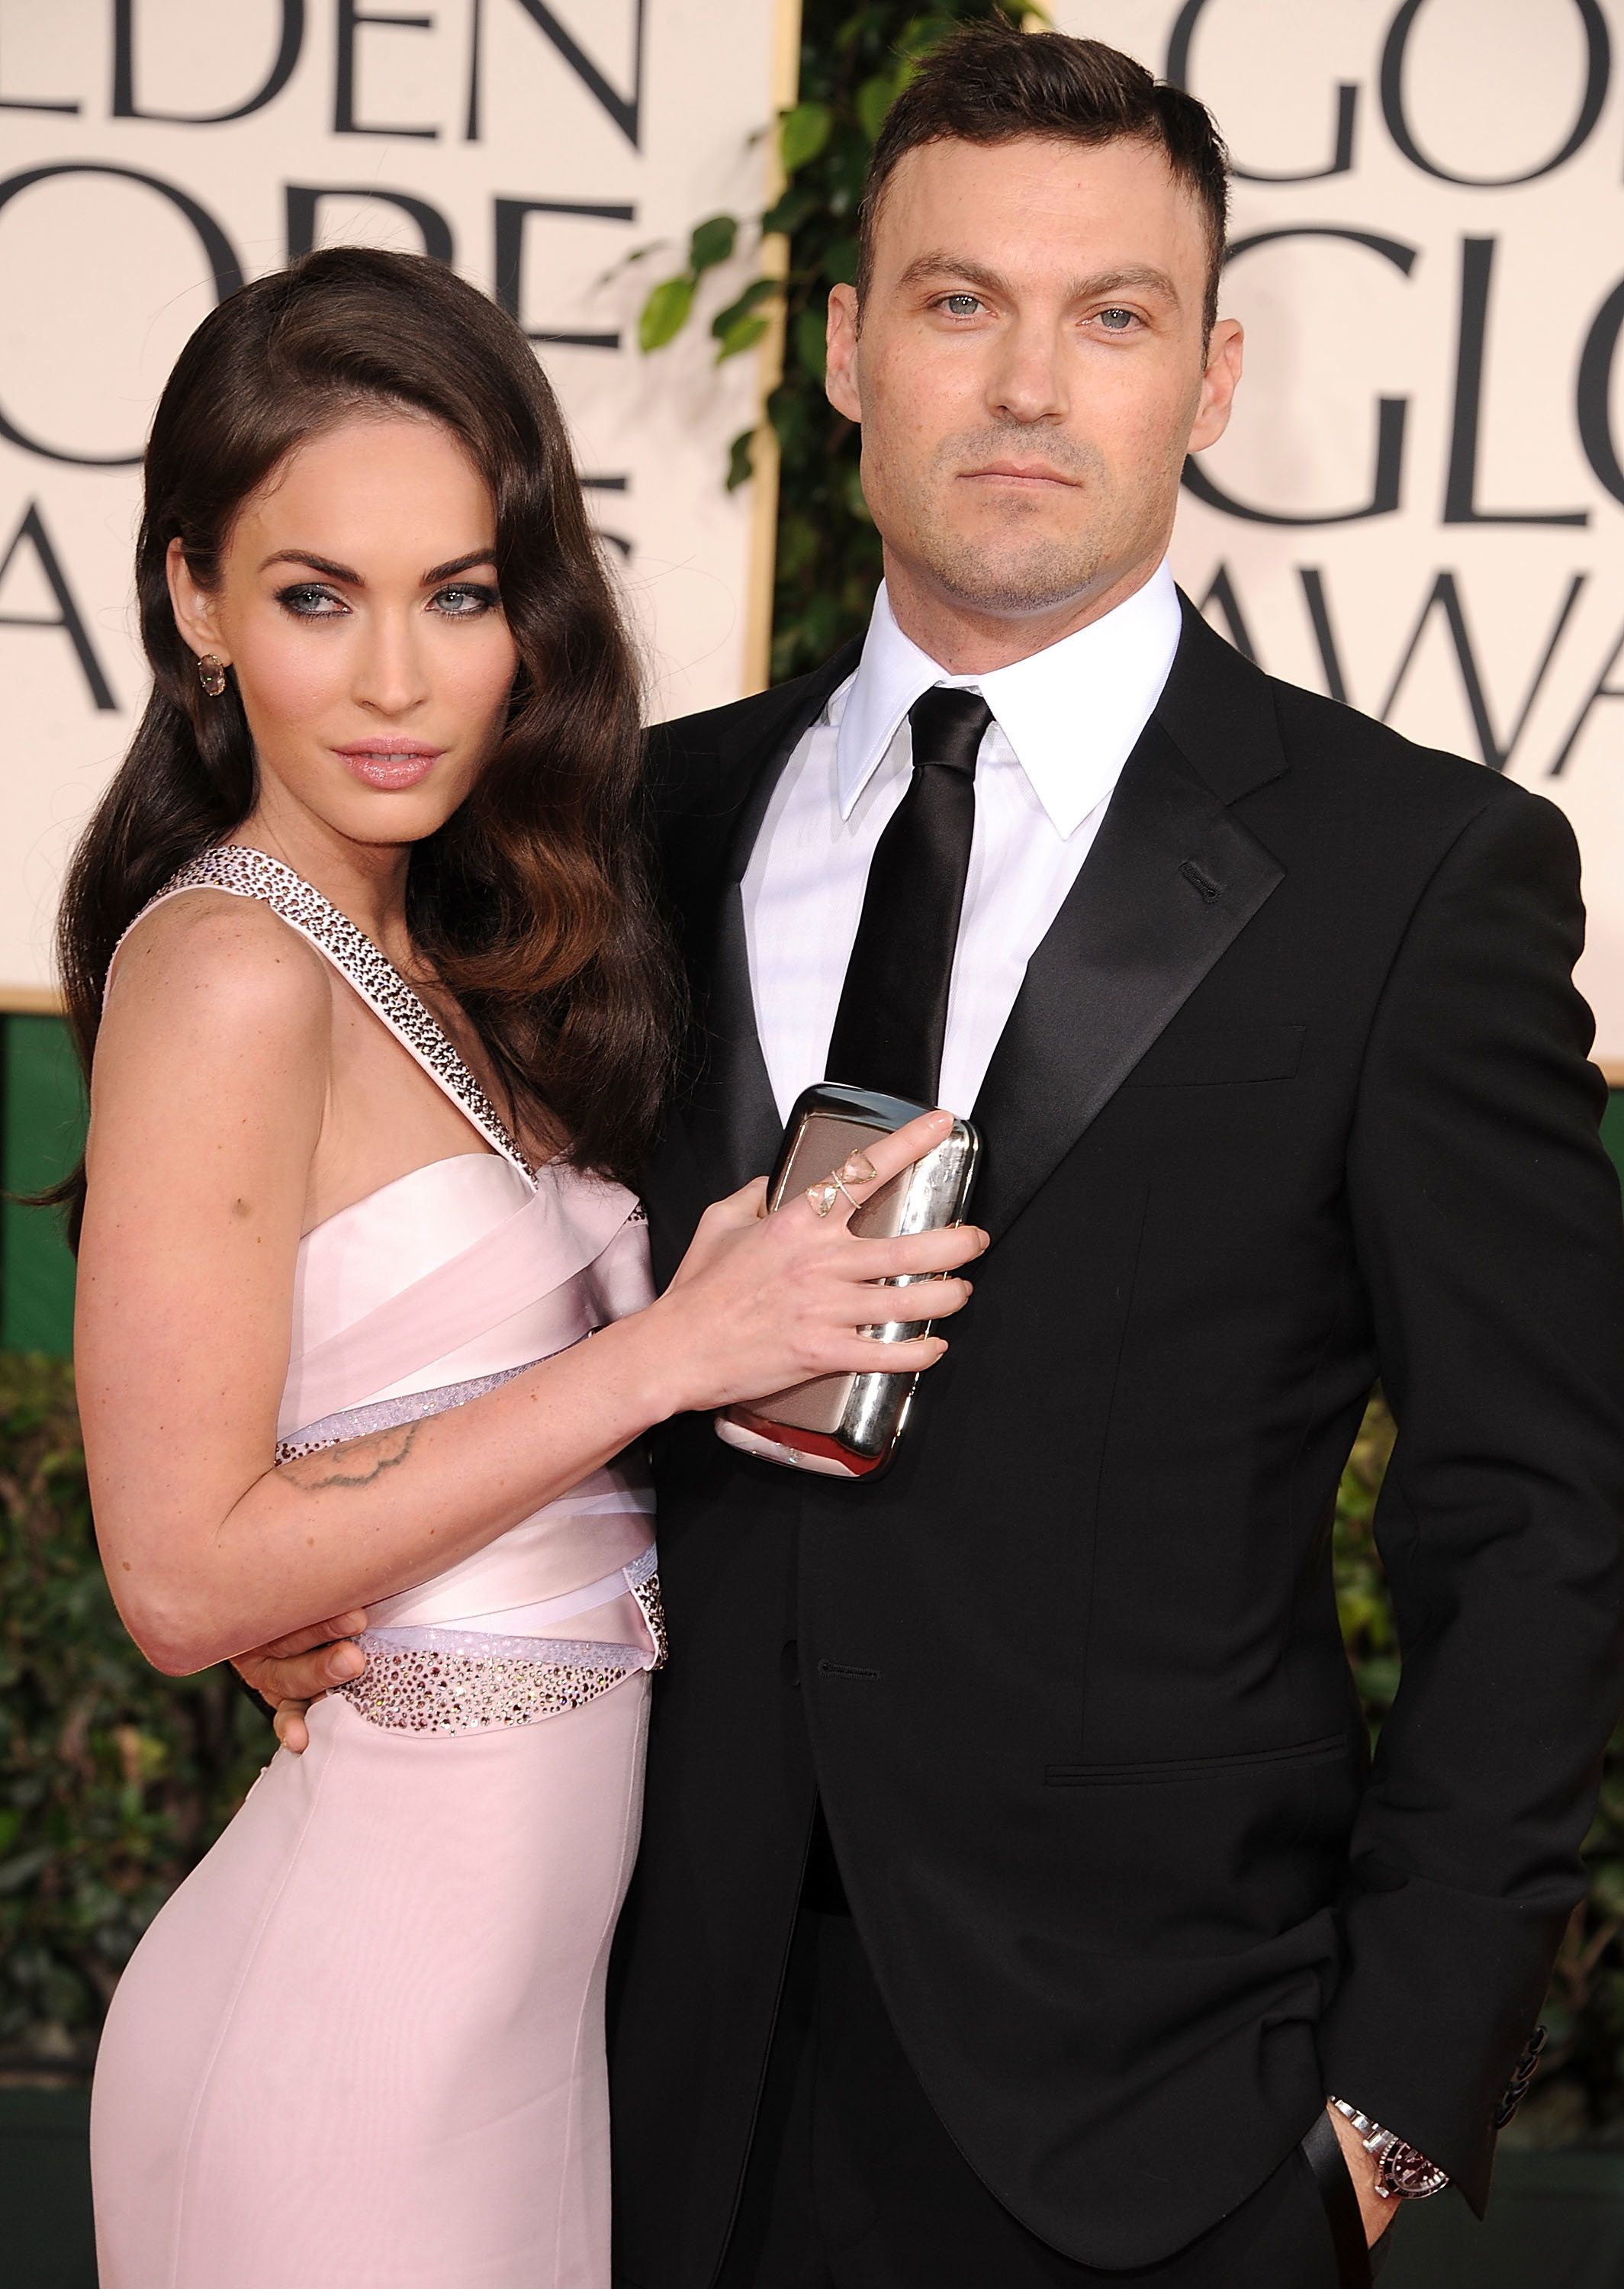 BEVERLY HILLS, CA - JANUARY 16:  Megan Fox and Brian Austin Green attends the 68th Annual Golden Globe Awards at The Beverly Hilton hotel on January 16, 2011 in Beverly Hills, California.  (Photo by Steve Granitz/WireImage)